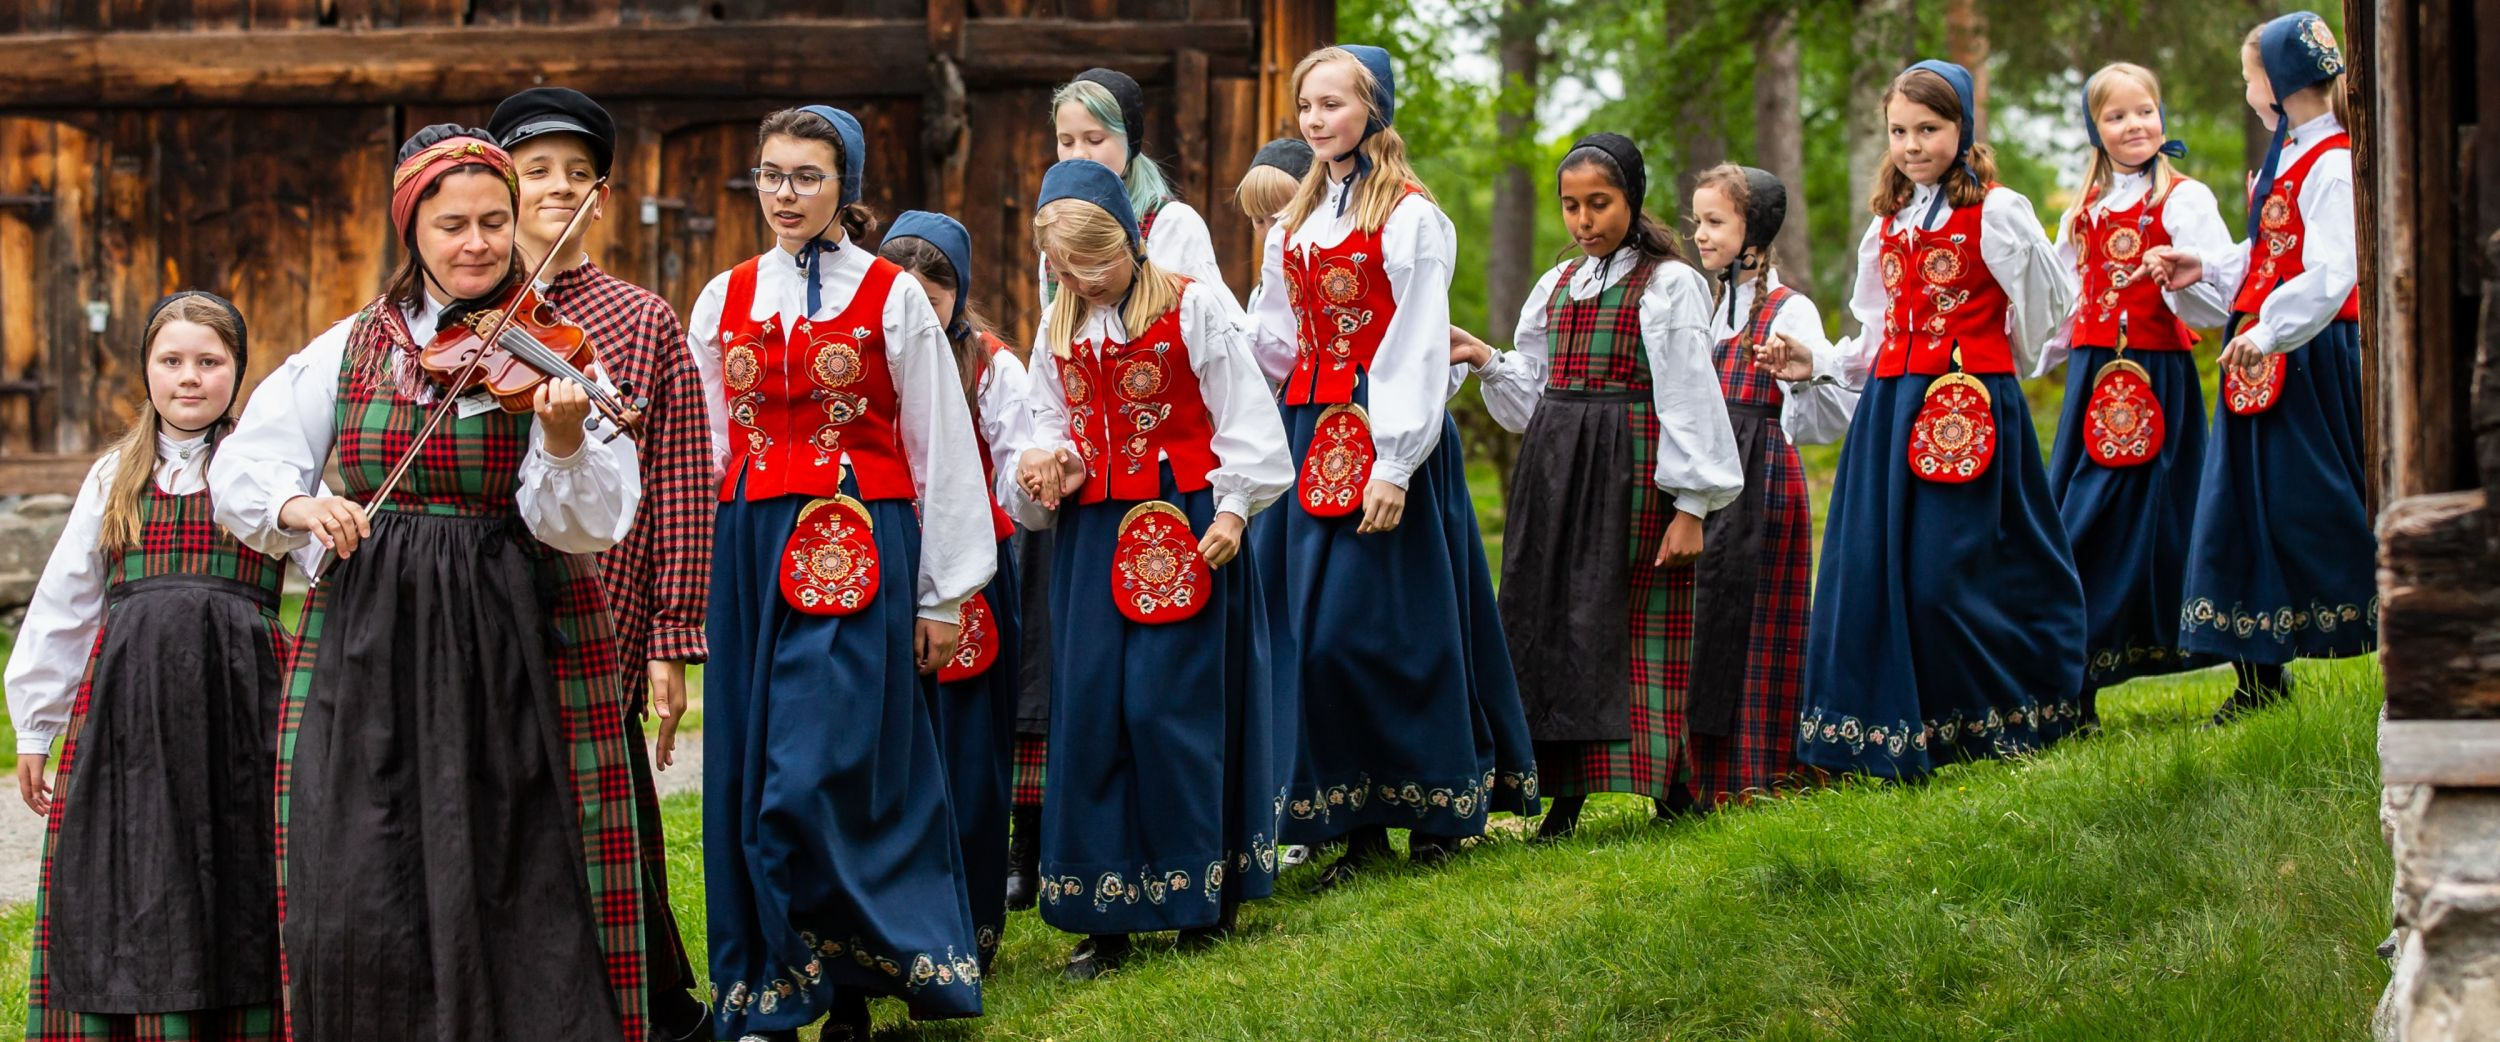 Leikarring at Romsdalsmuseet, woman playing a fiddle and girls in the Norwegian traditional costume Bunad.